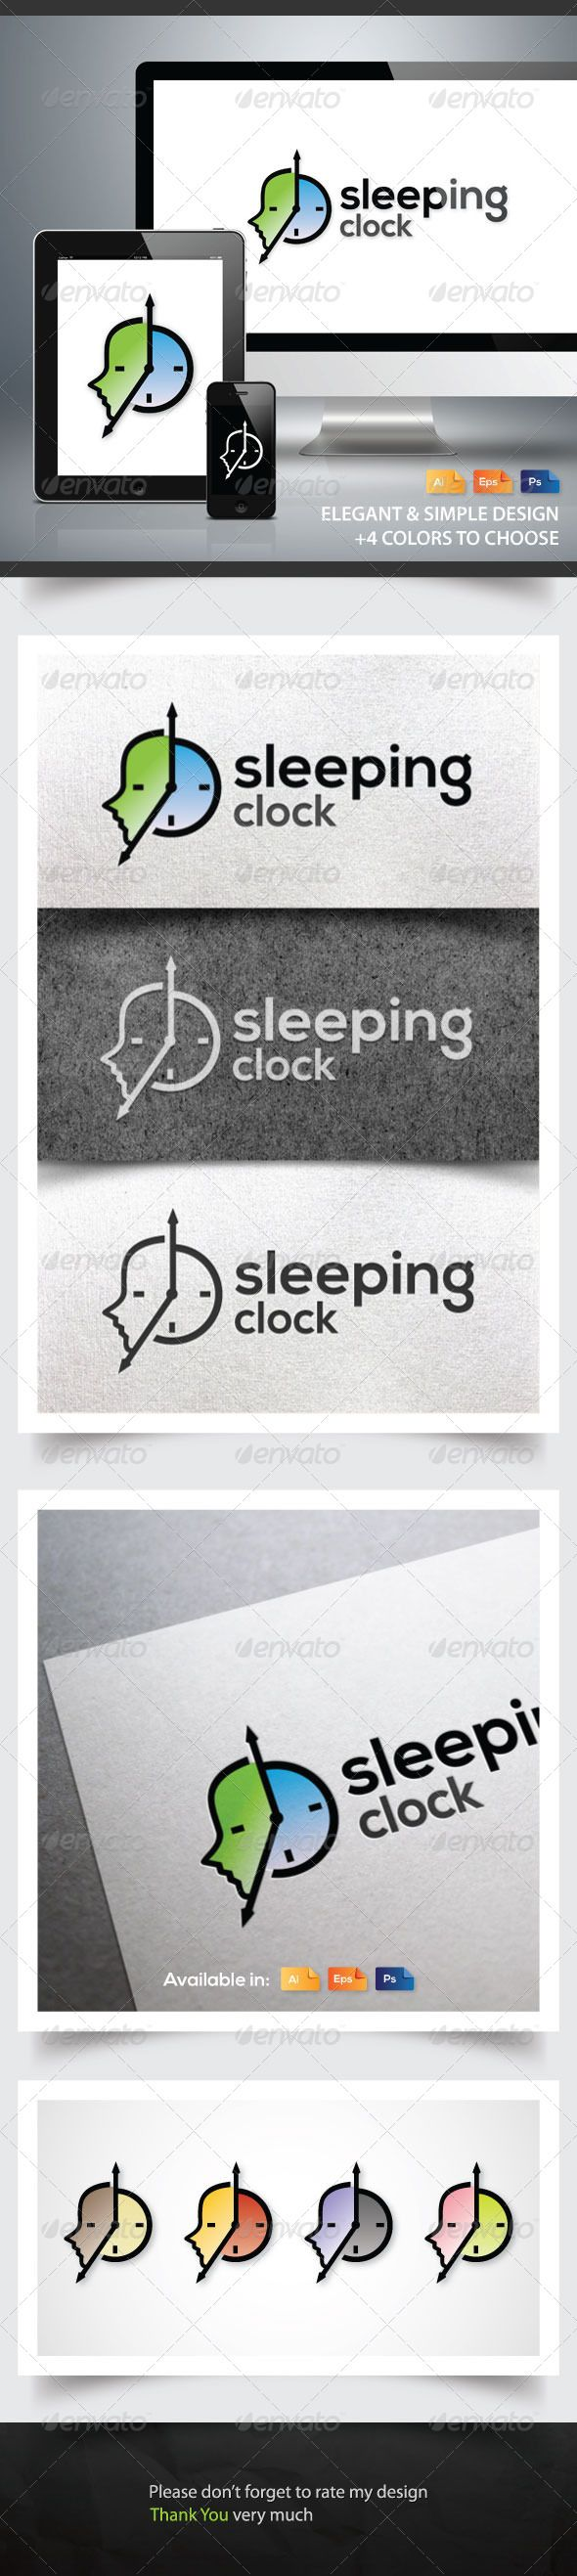 Sleeping Clock — Photoshop PSD #rest #simple • Available here → https://graphicriver.net/item/sleeping-clock/6088204?ref=pxcr